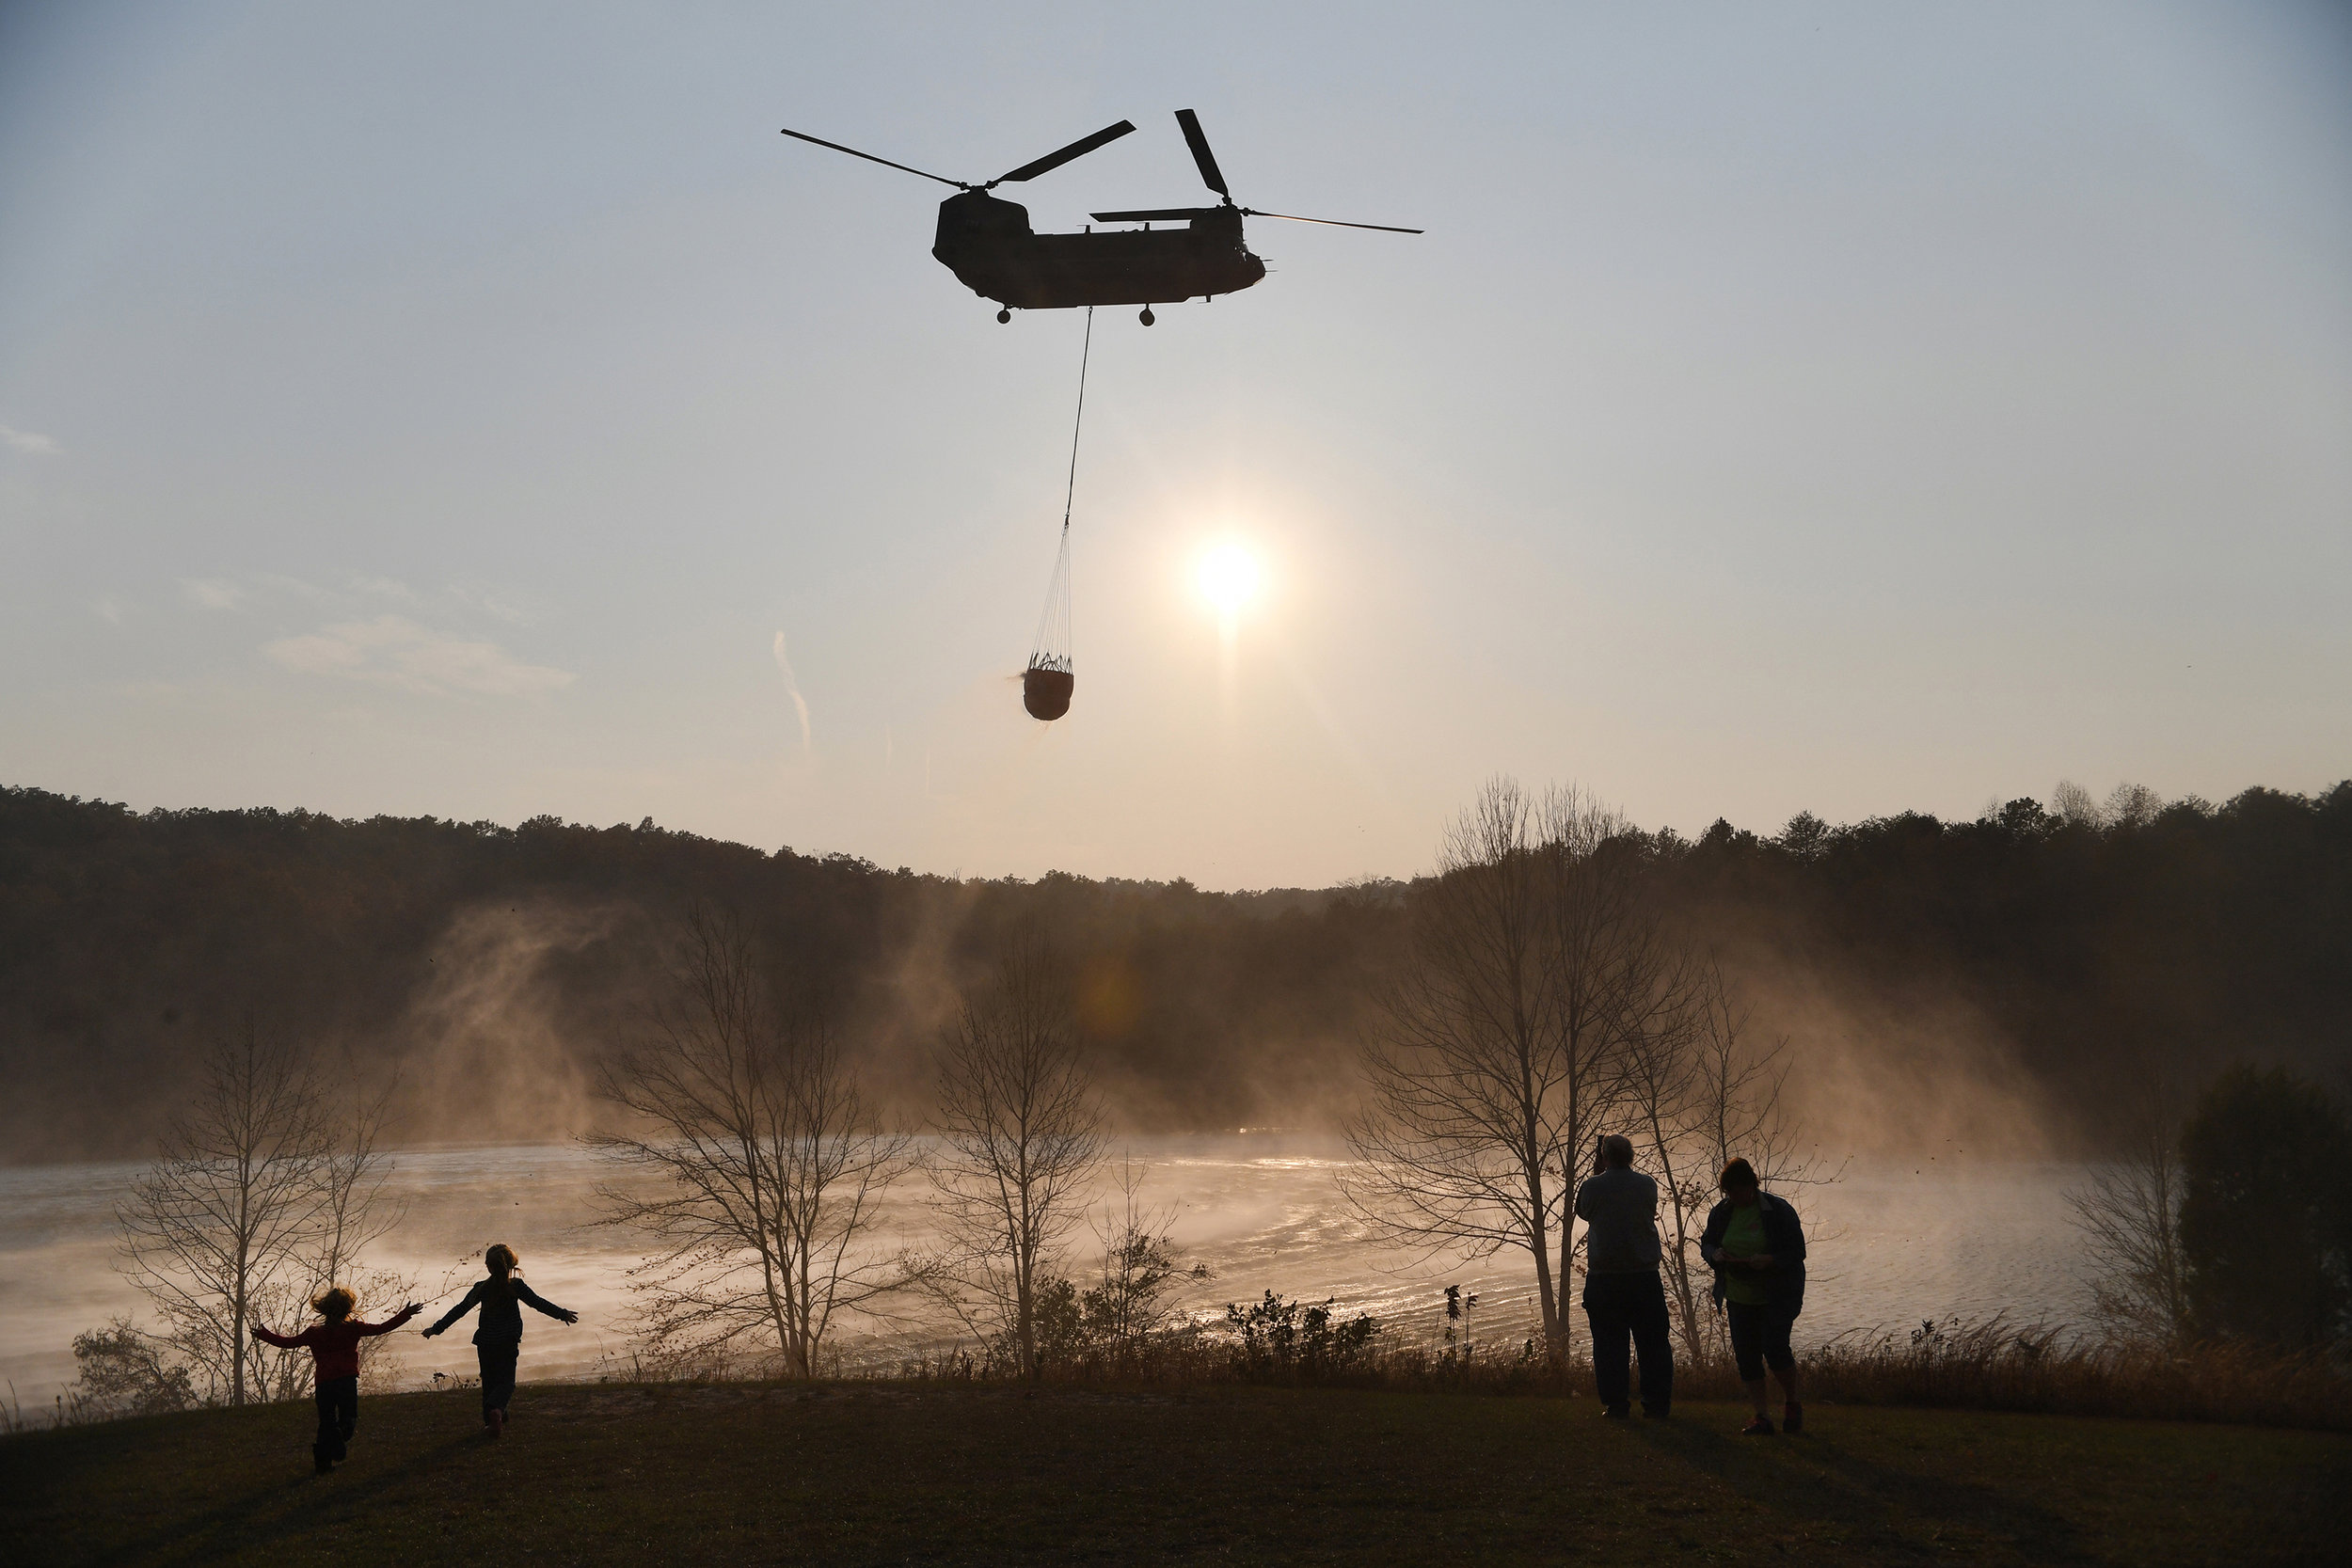 A Chinook pulls water out of Lake Oolenoy near Table Rock State Park on Tuesday, November 15, as firefighters continue to battle wildfires.